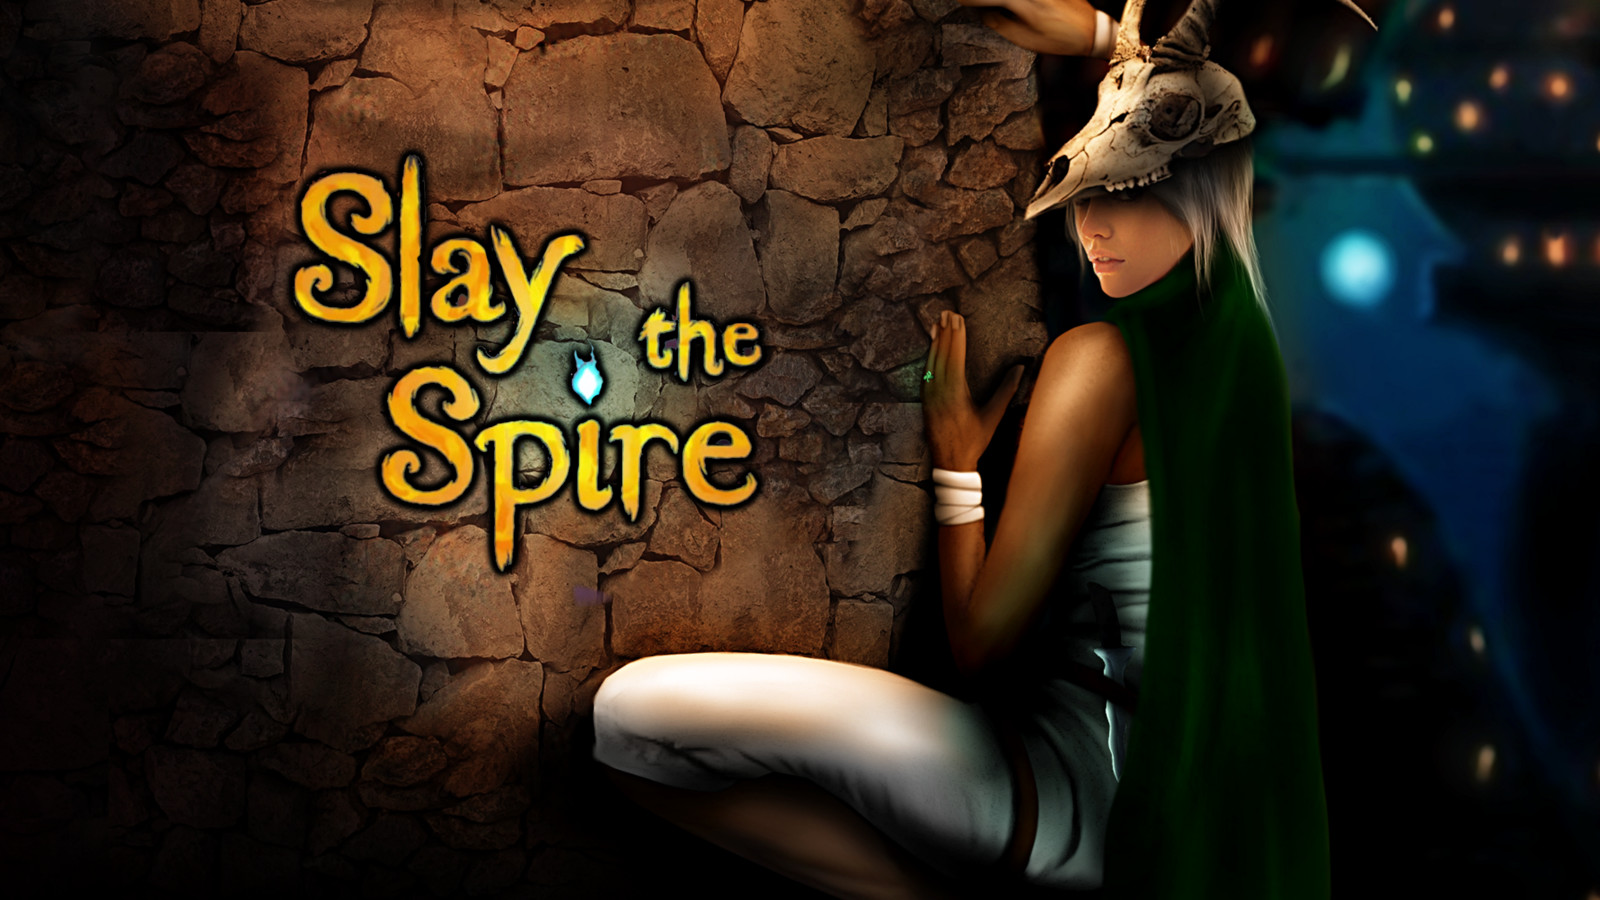 Slay the Spire Video game